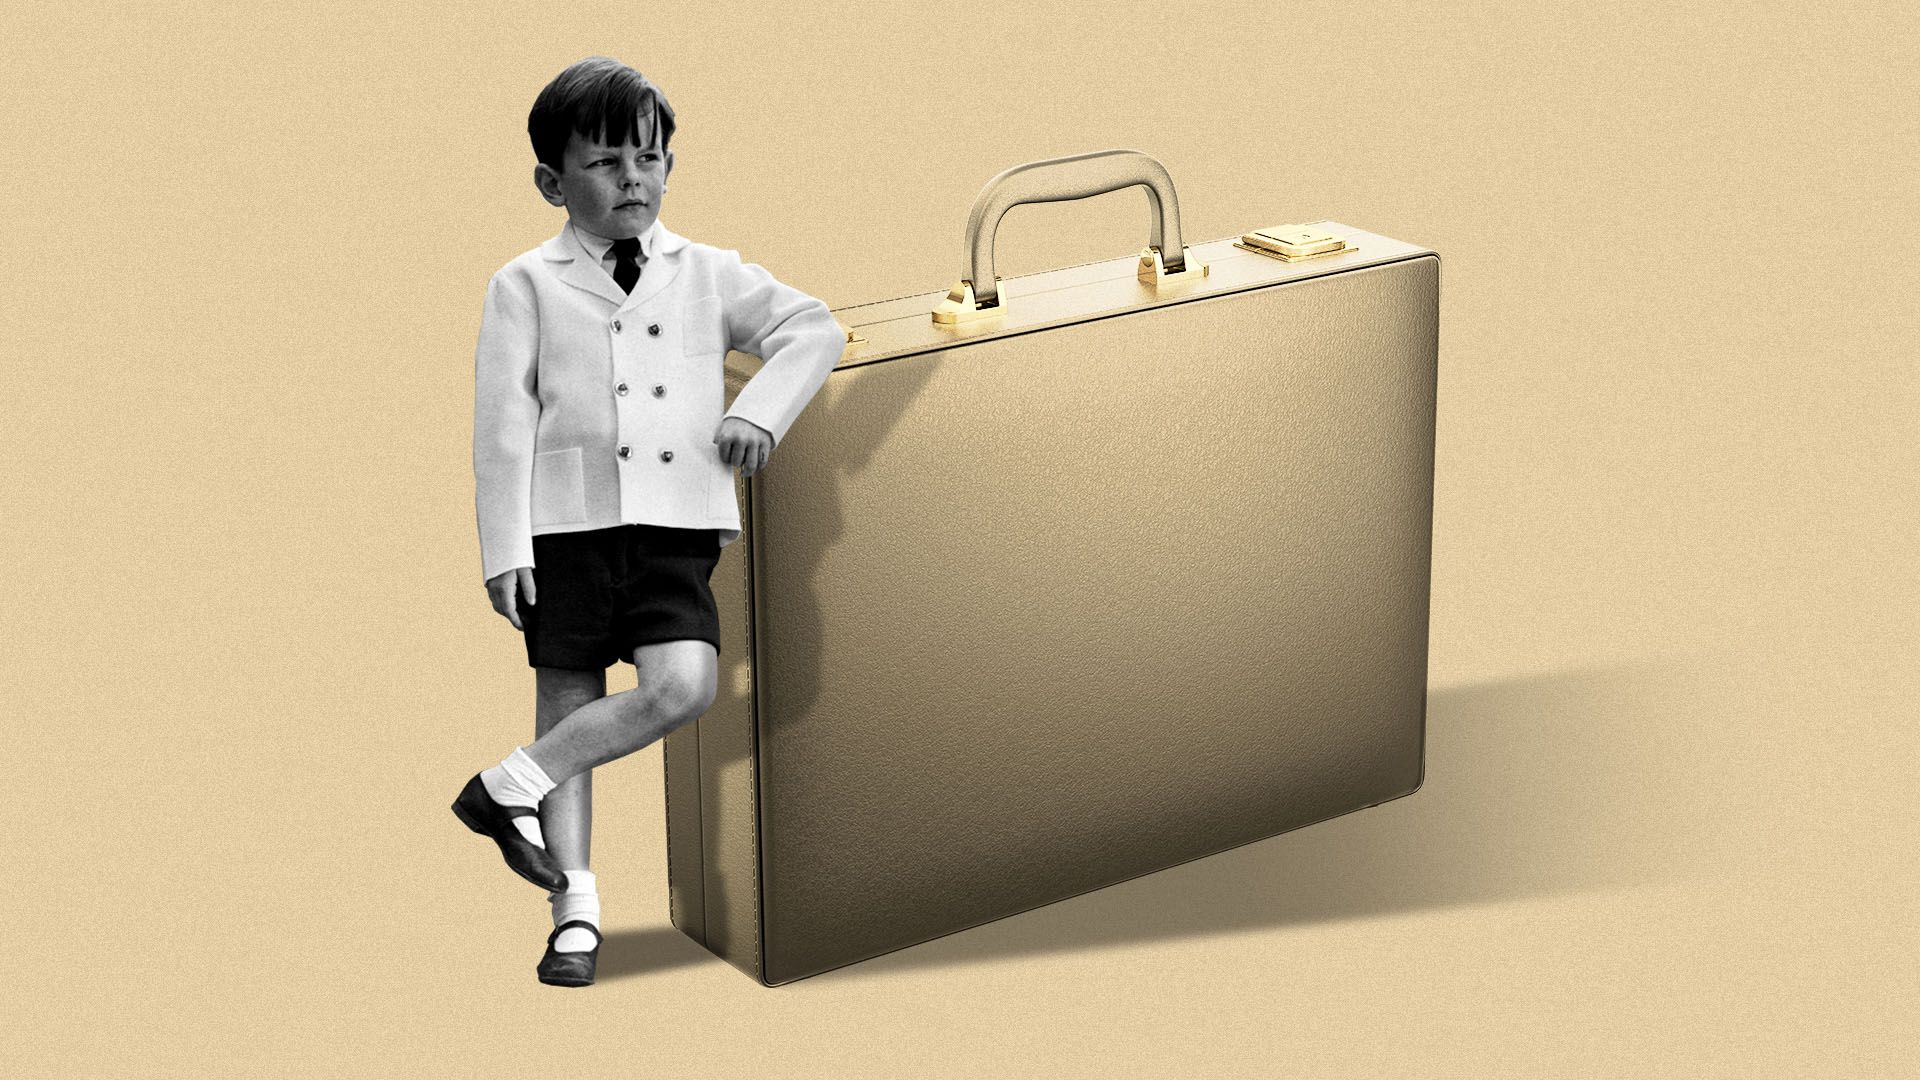 Illustration of an archival image of a boy in fancy clothes leaning up against a giant suitcase